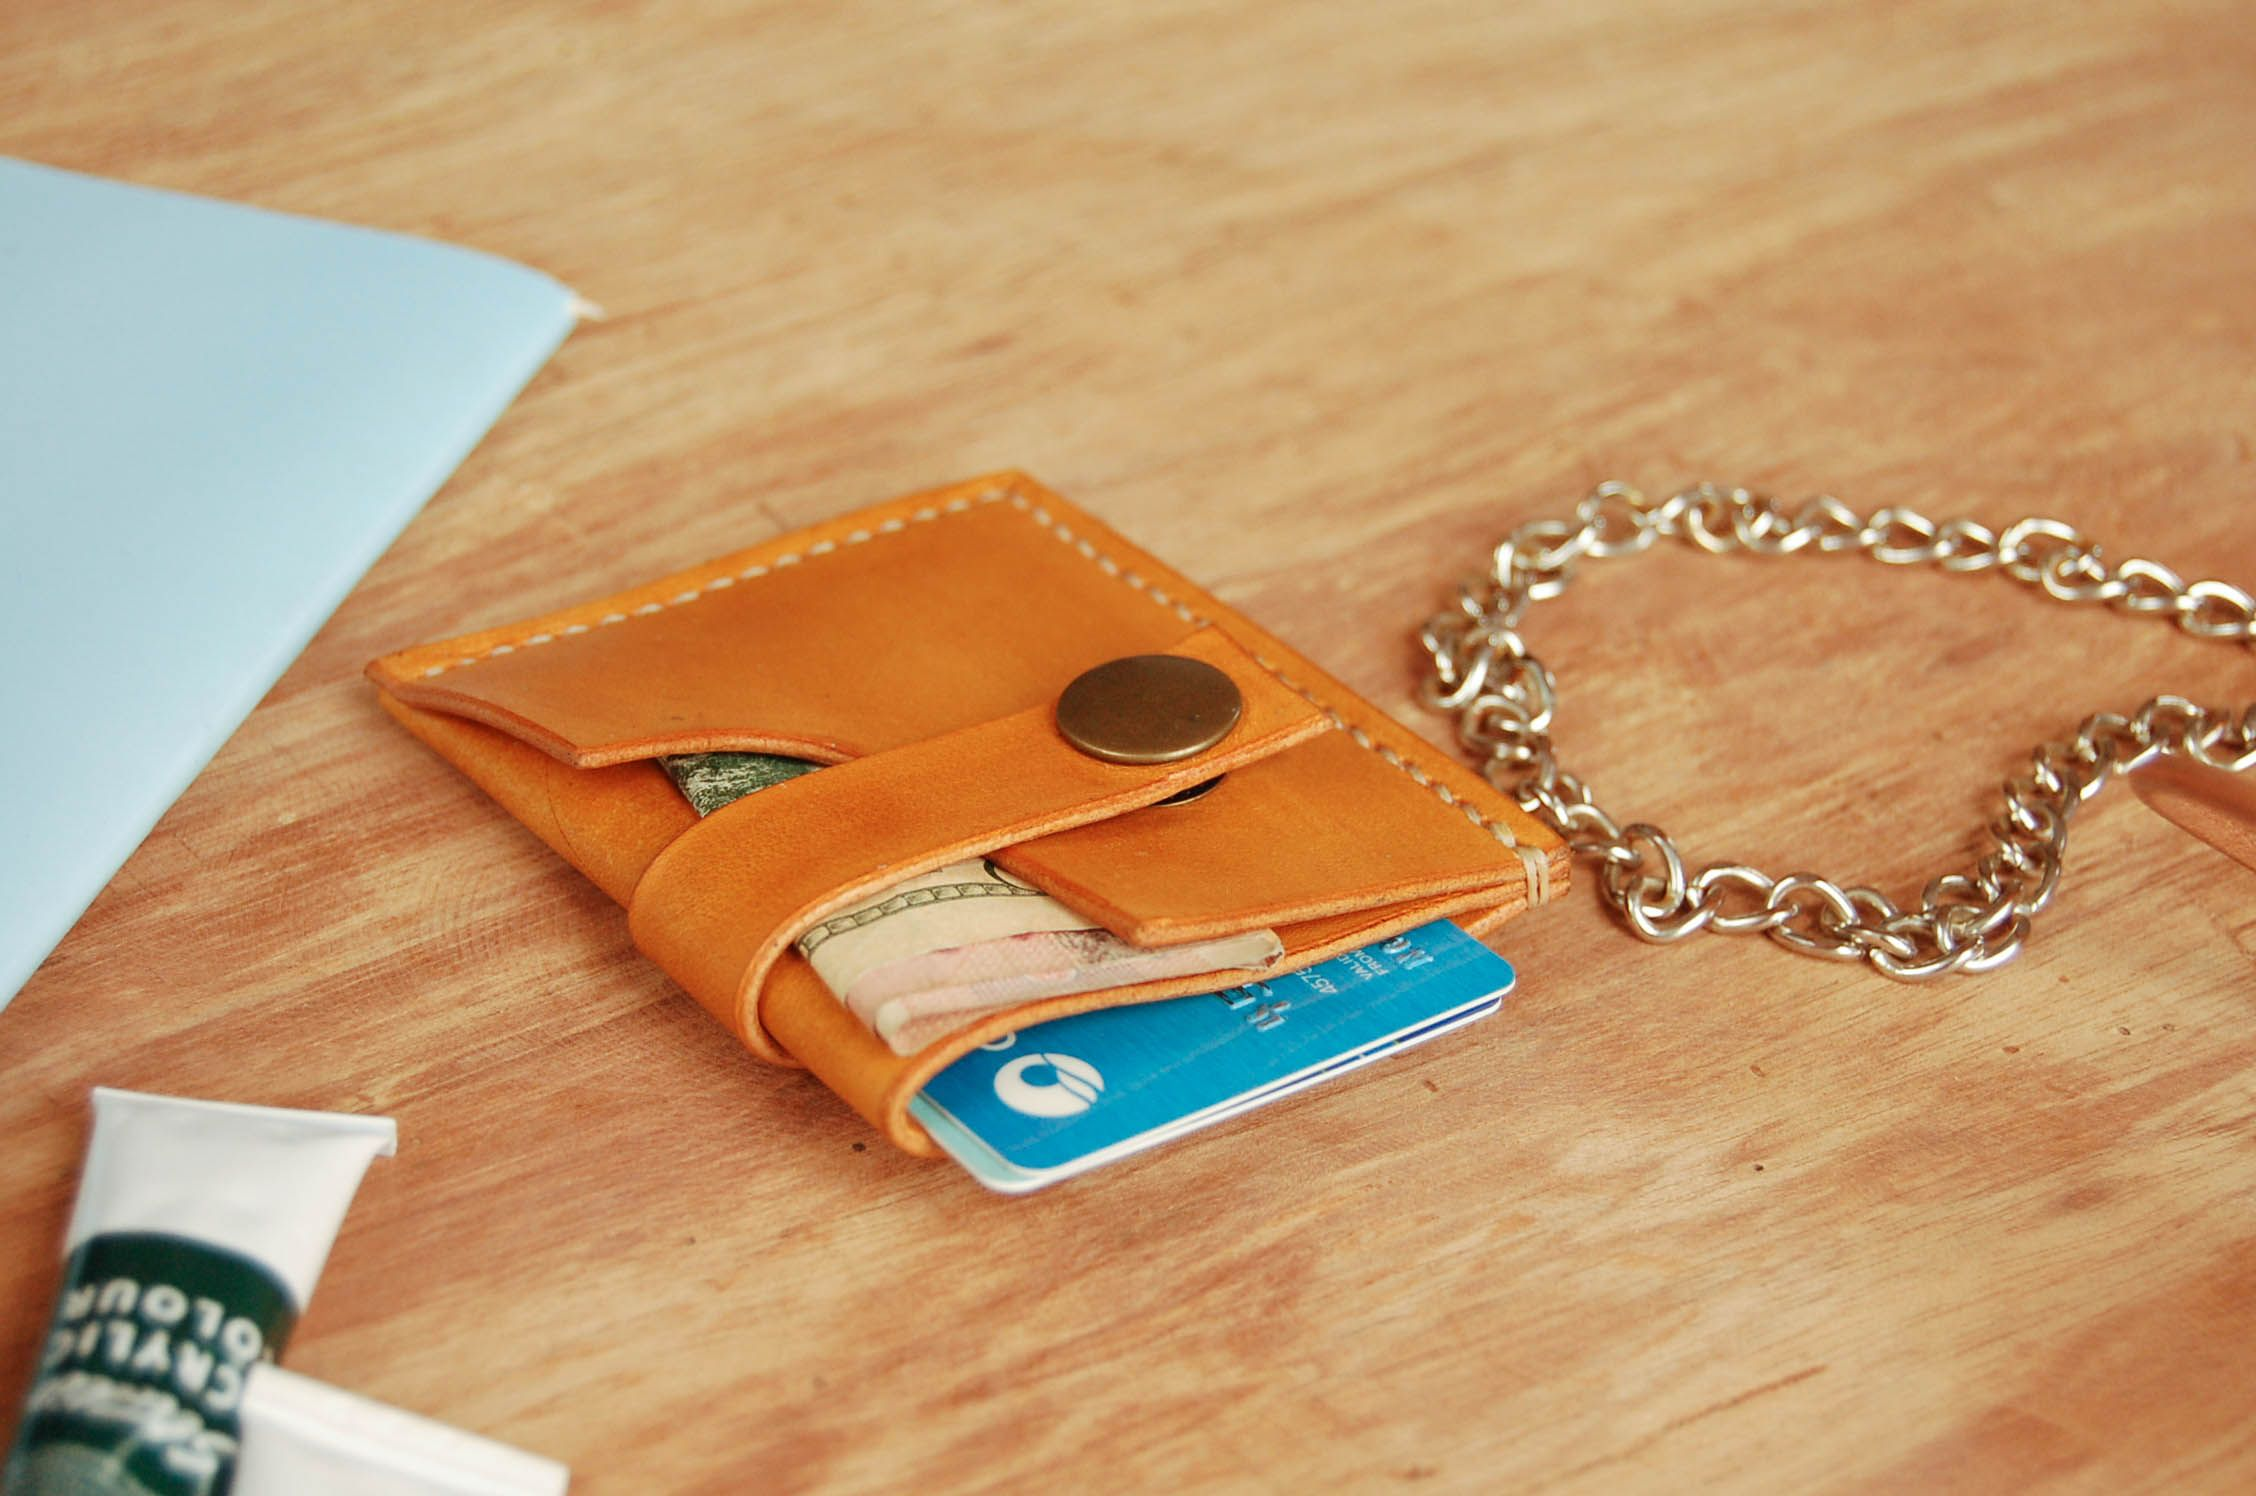 Leather Crafts by UnimiStore are Hand sewn veg leather items like ...